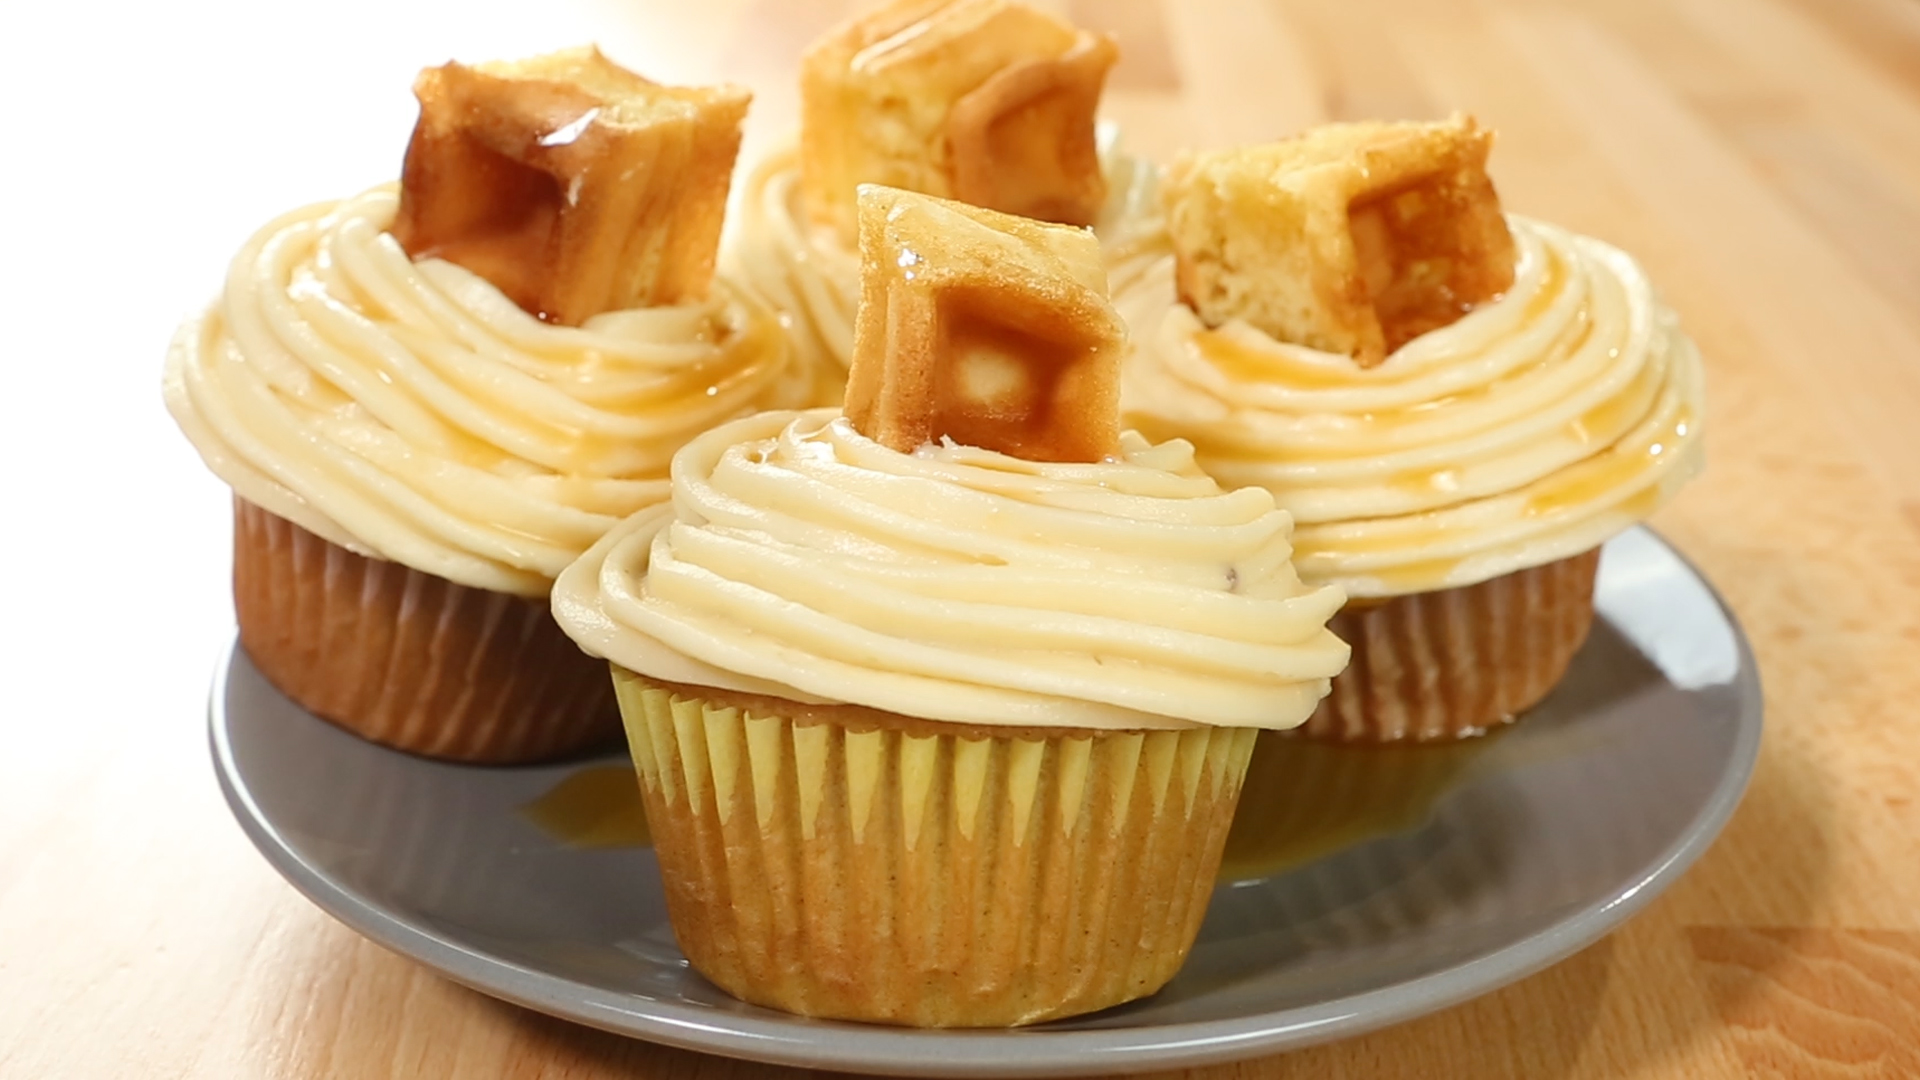 Chicken & Waffle Cupcakes